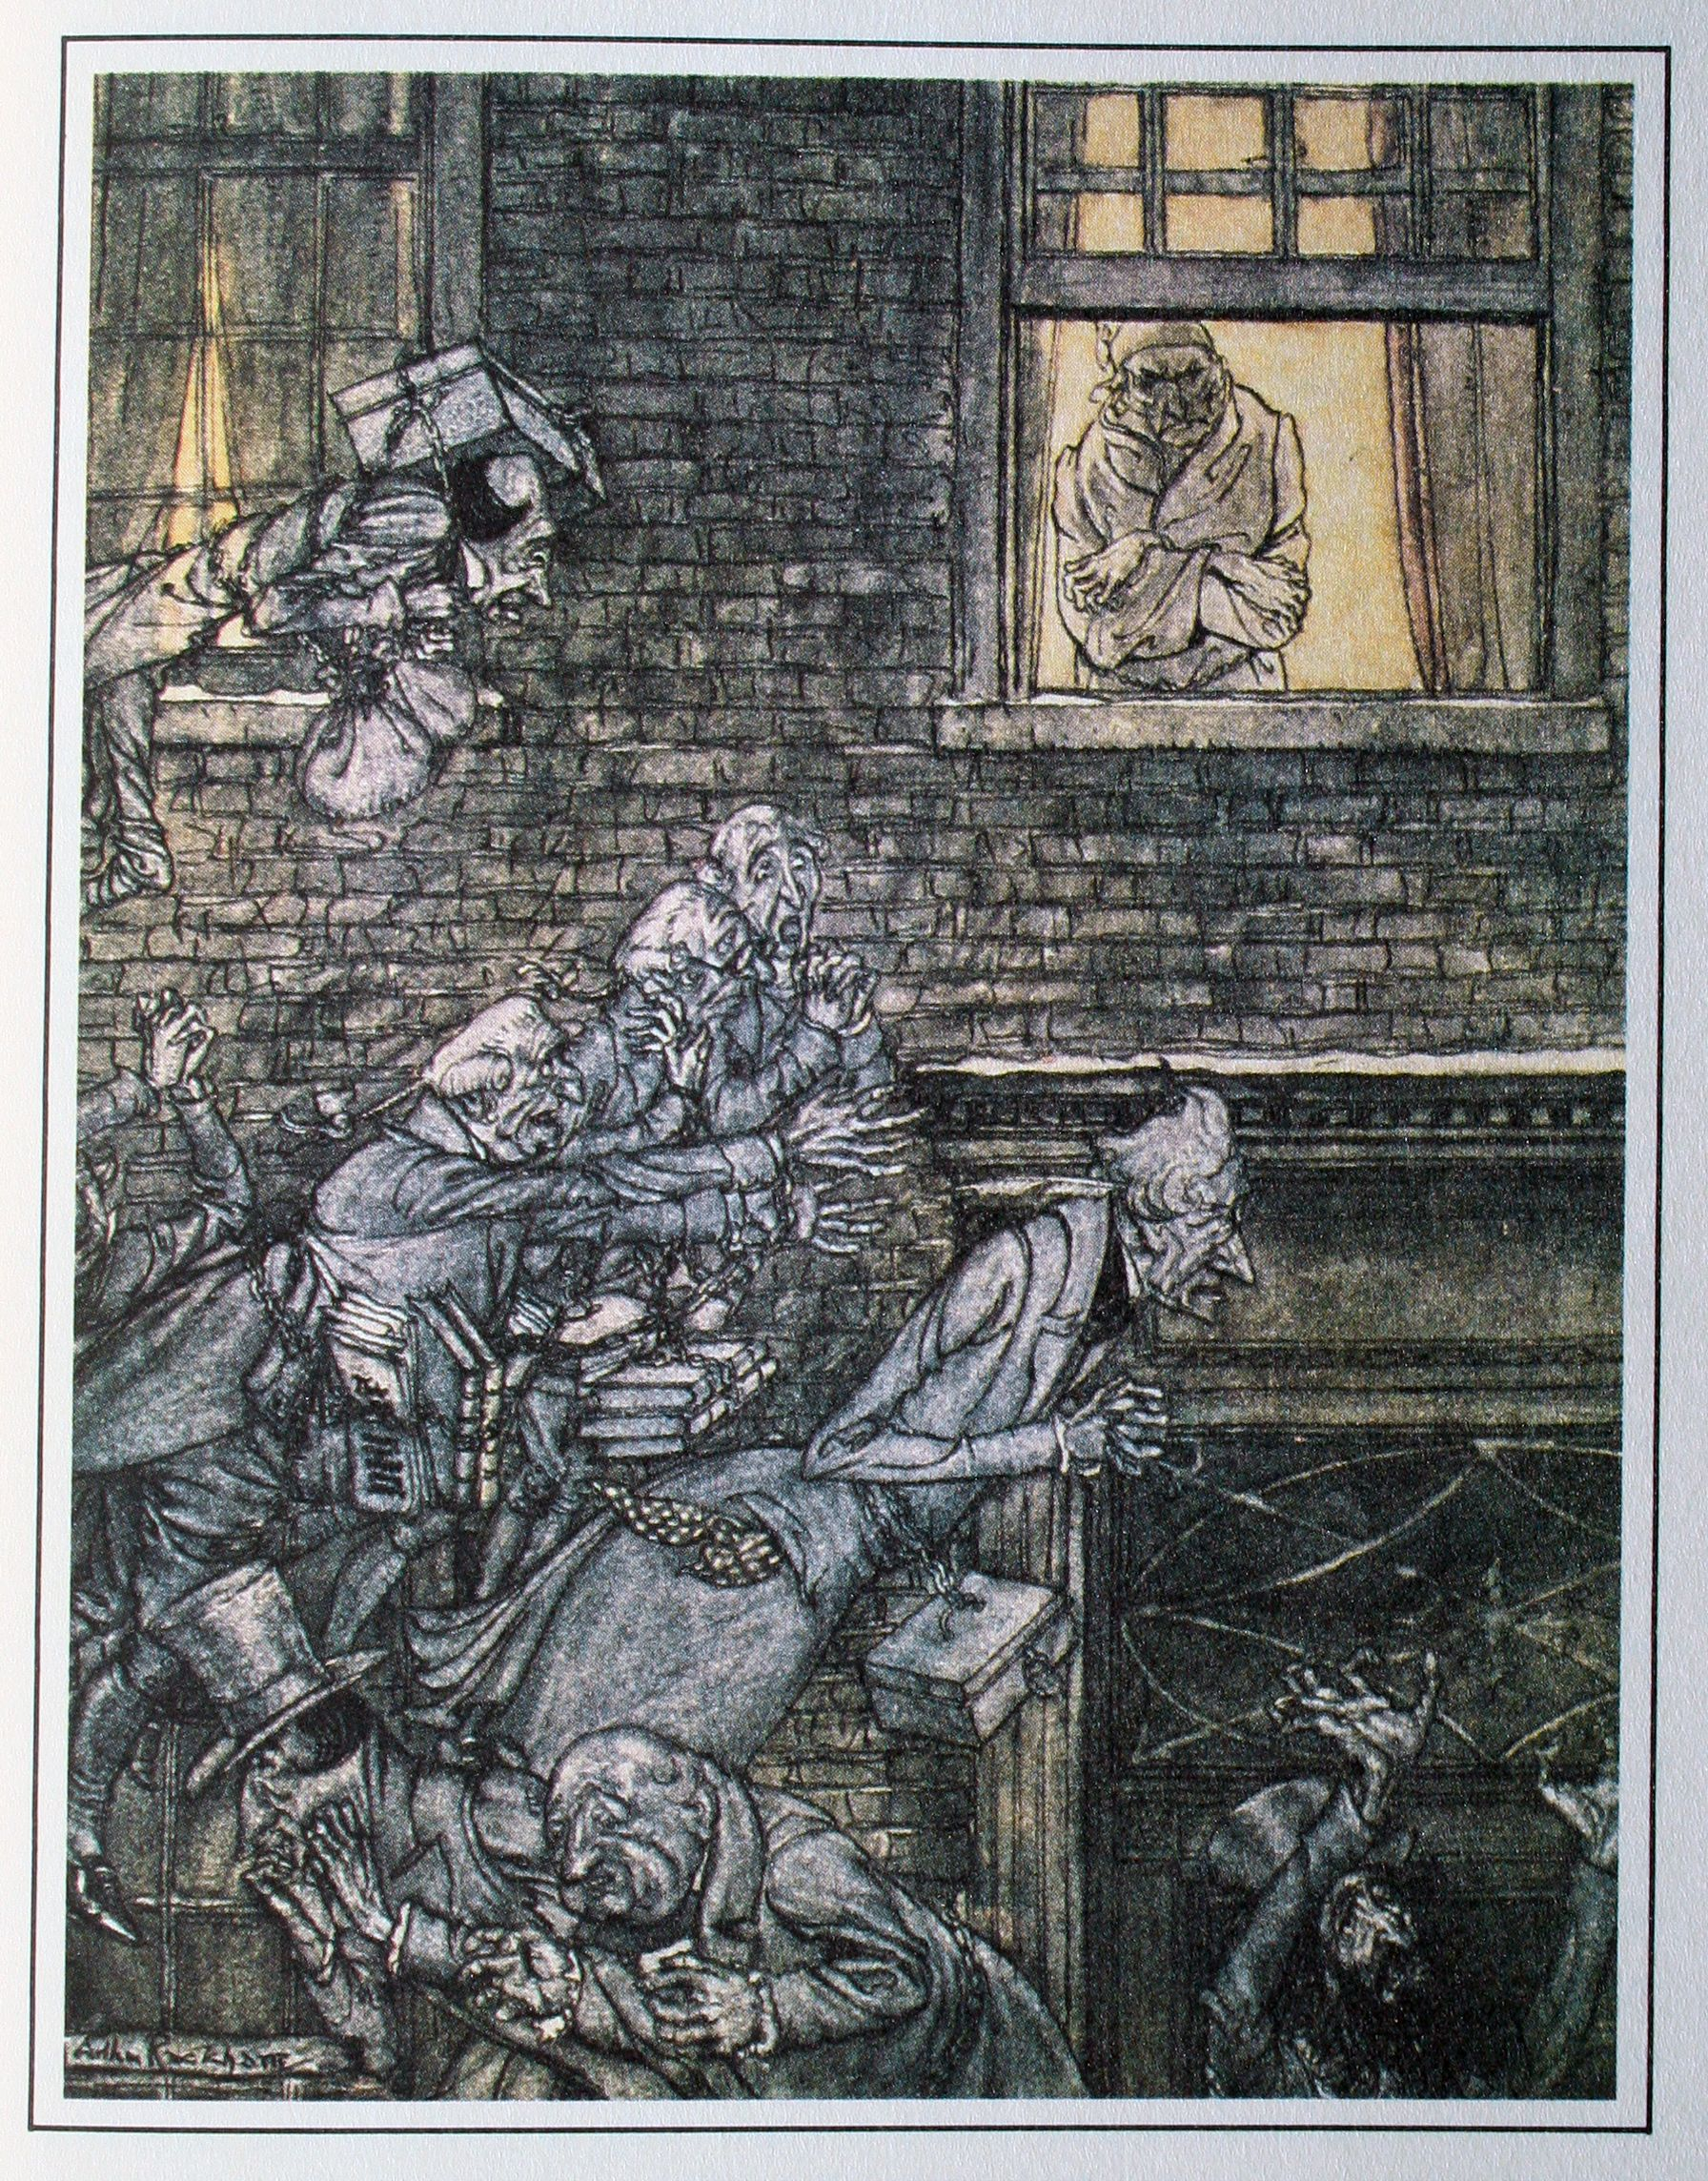 Arthur Rackham S Christmas Carol 5 The Air Was Filled With Phantoms Wandering Hither And Thither Christmas Carol Arthur Rackham Charles Dickens Christmas